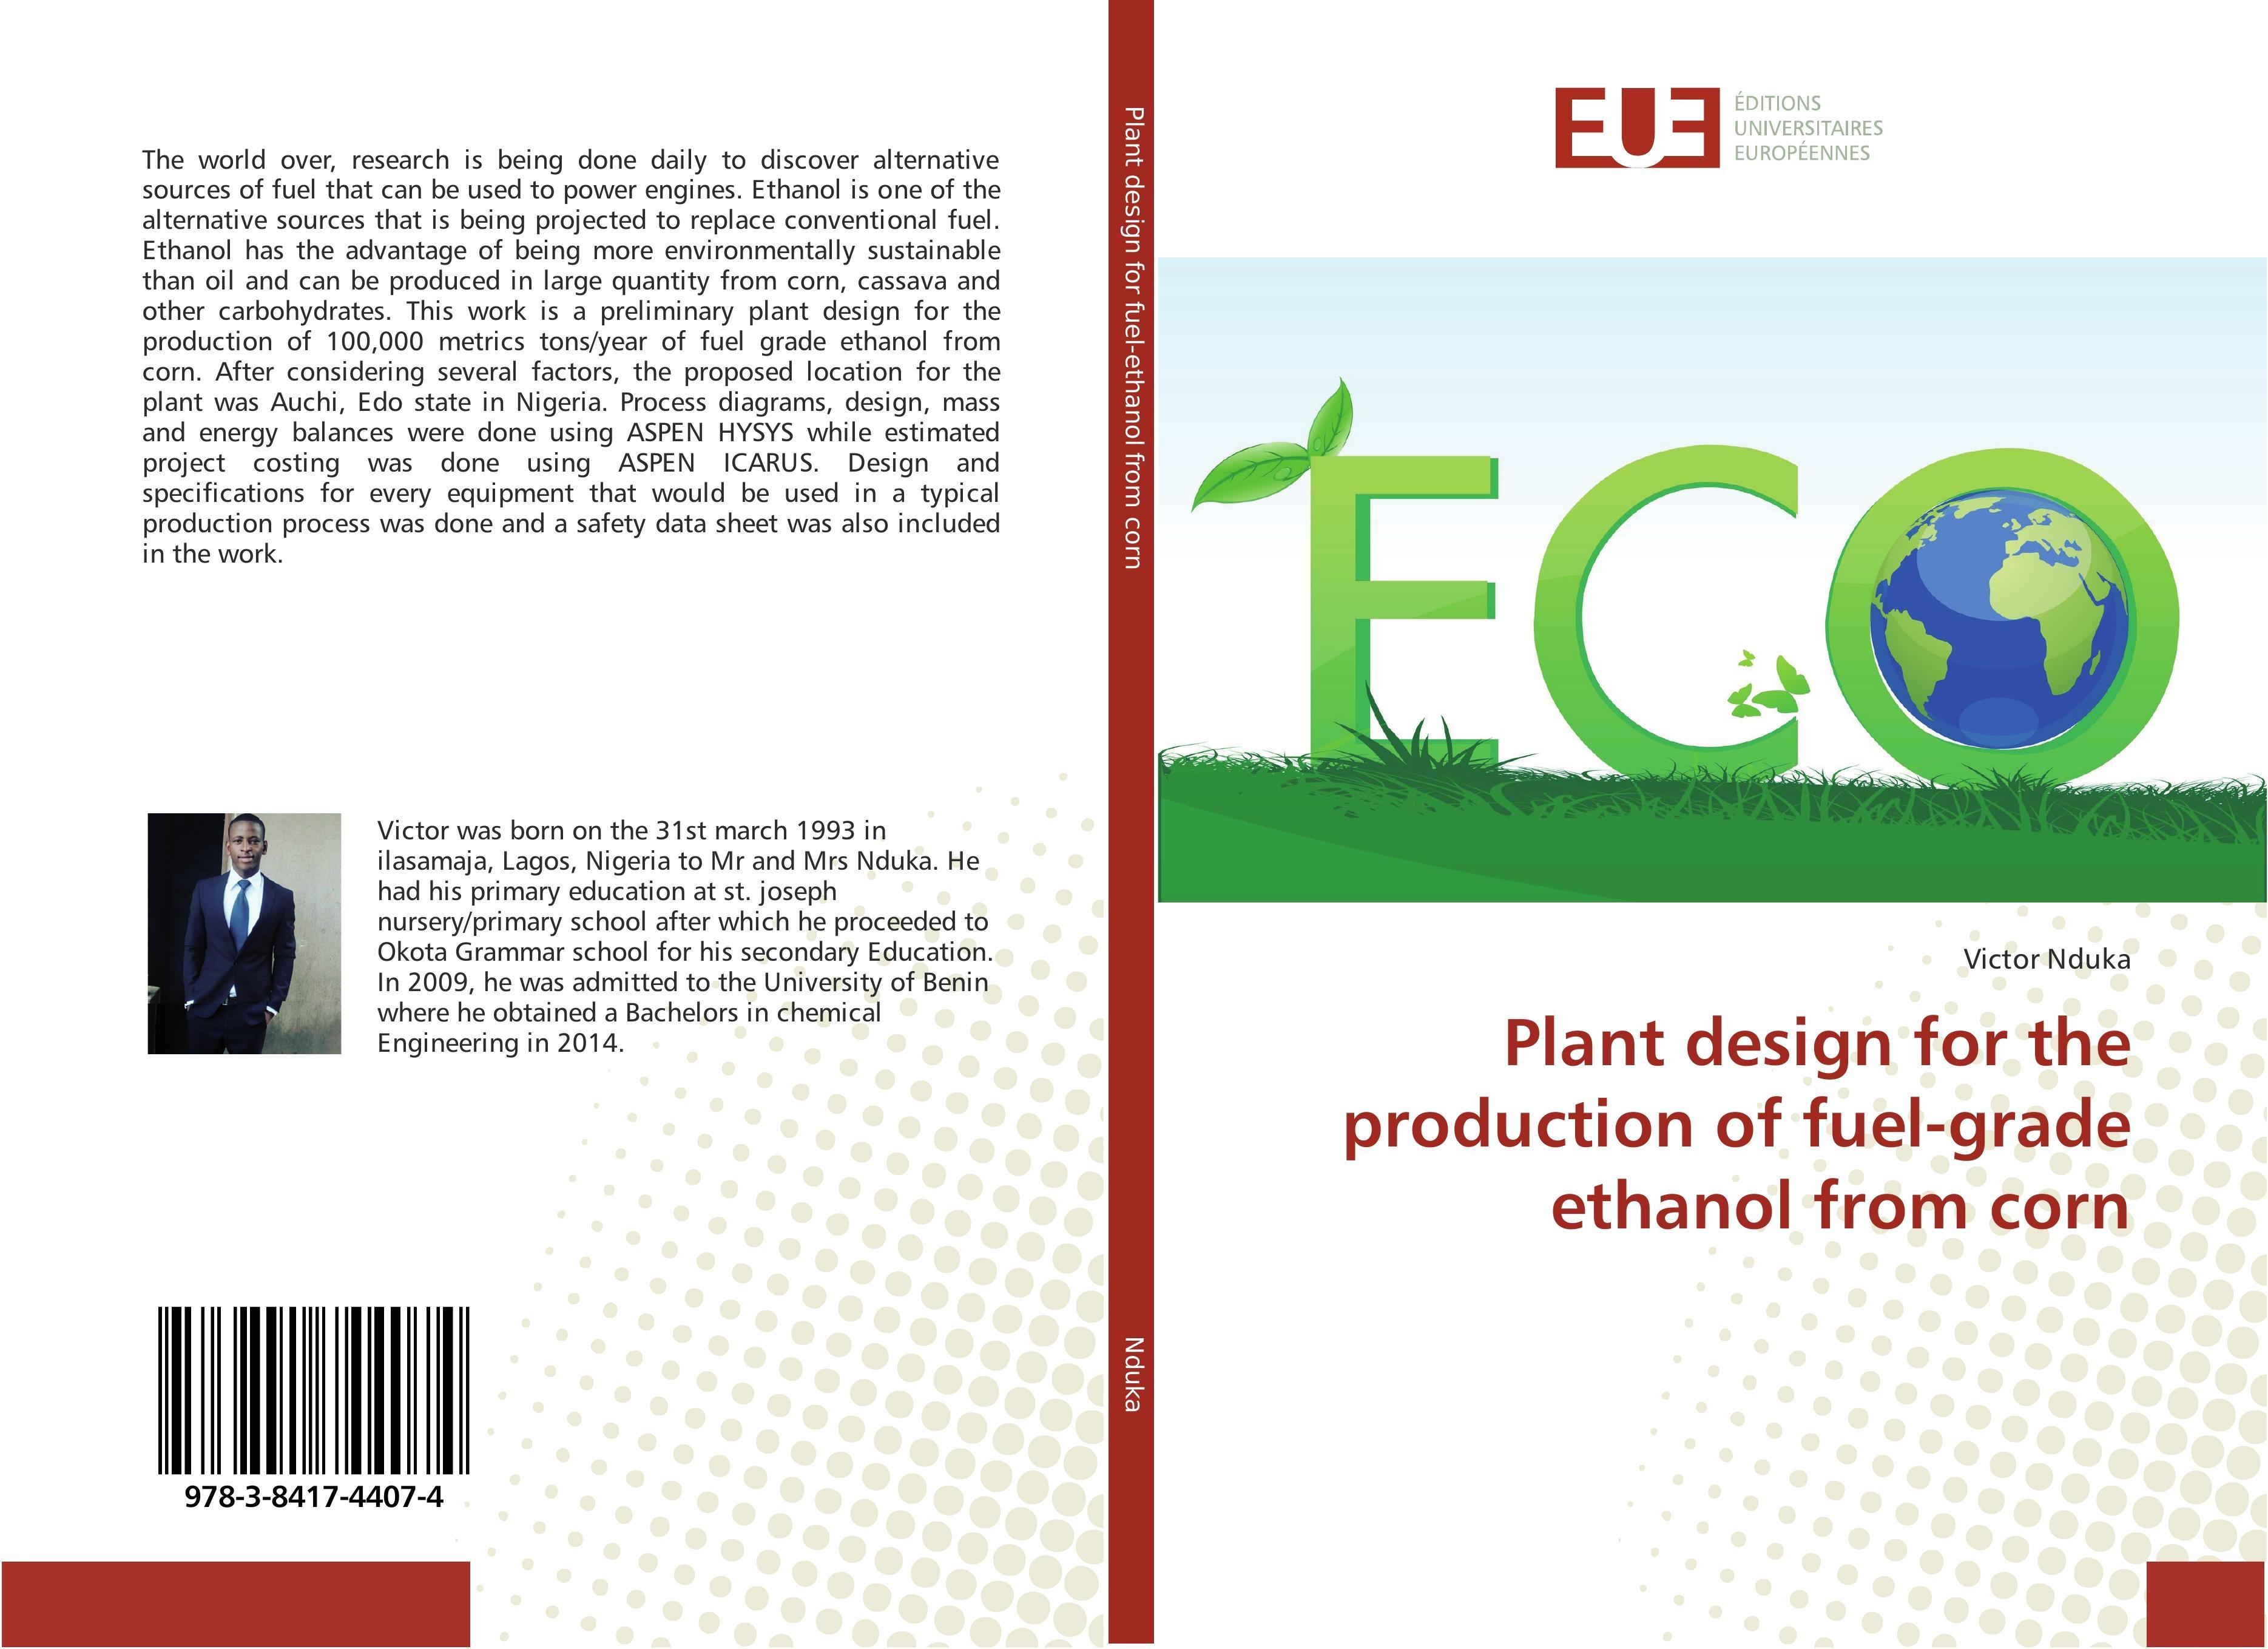 Plant design for the production of fuel-grade ethanol from corn Victor Nduka